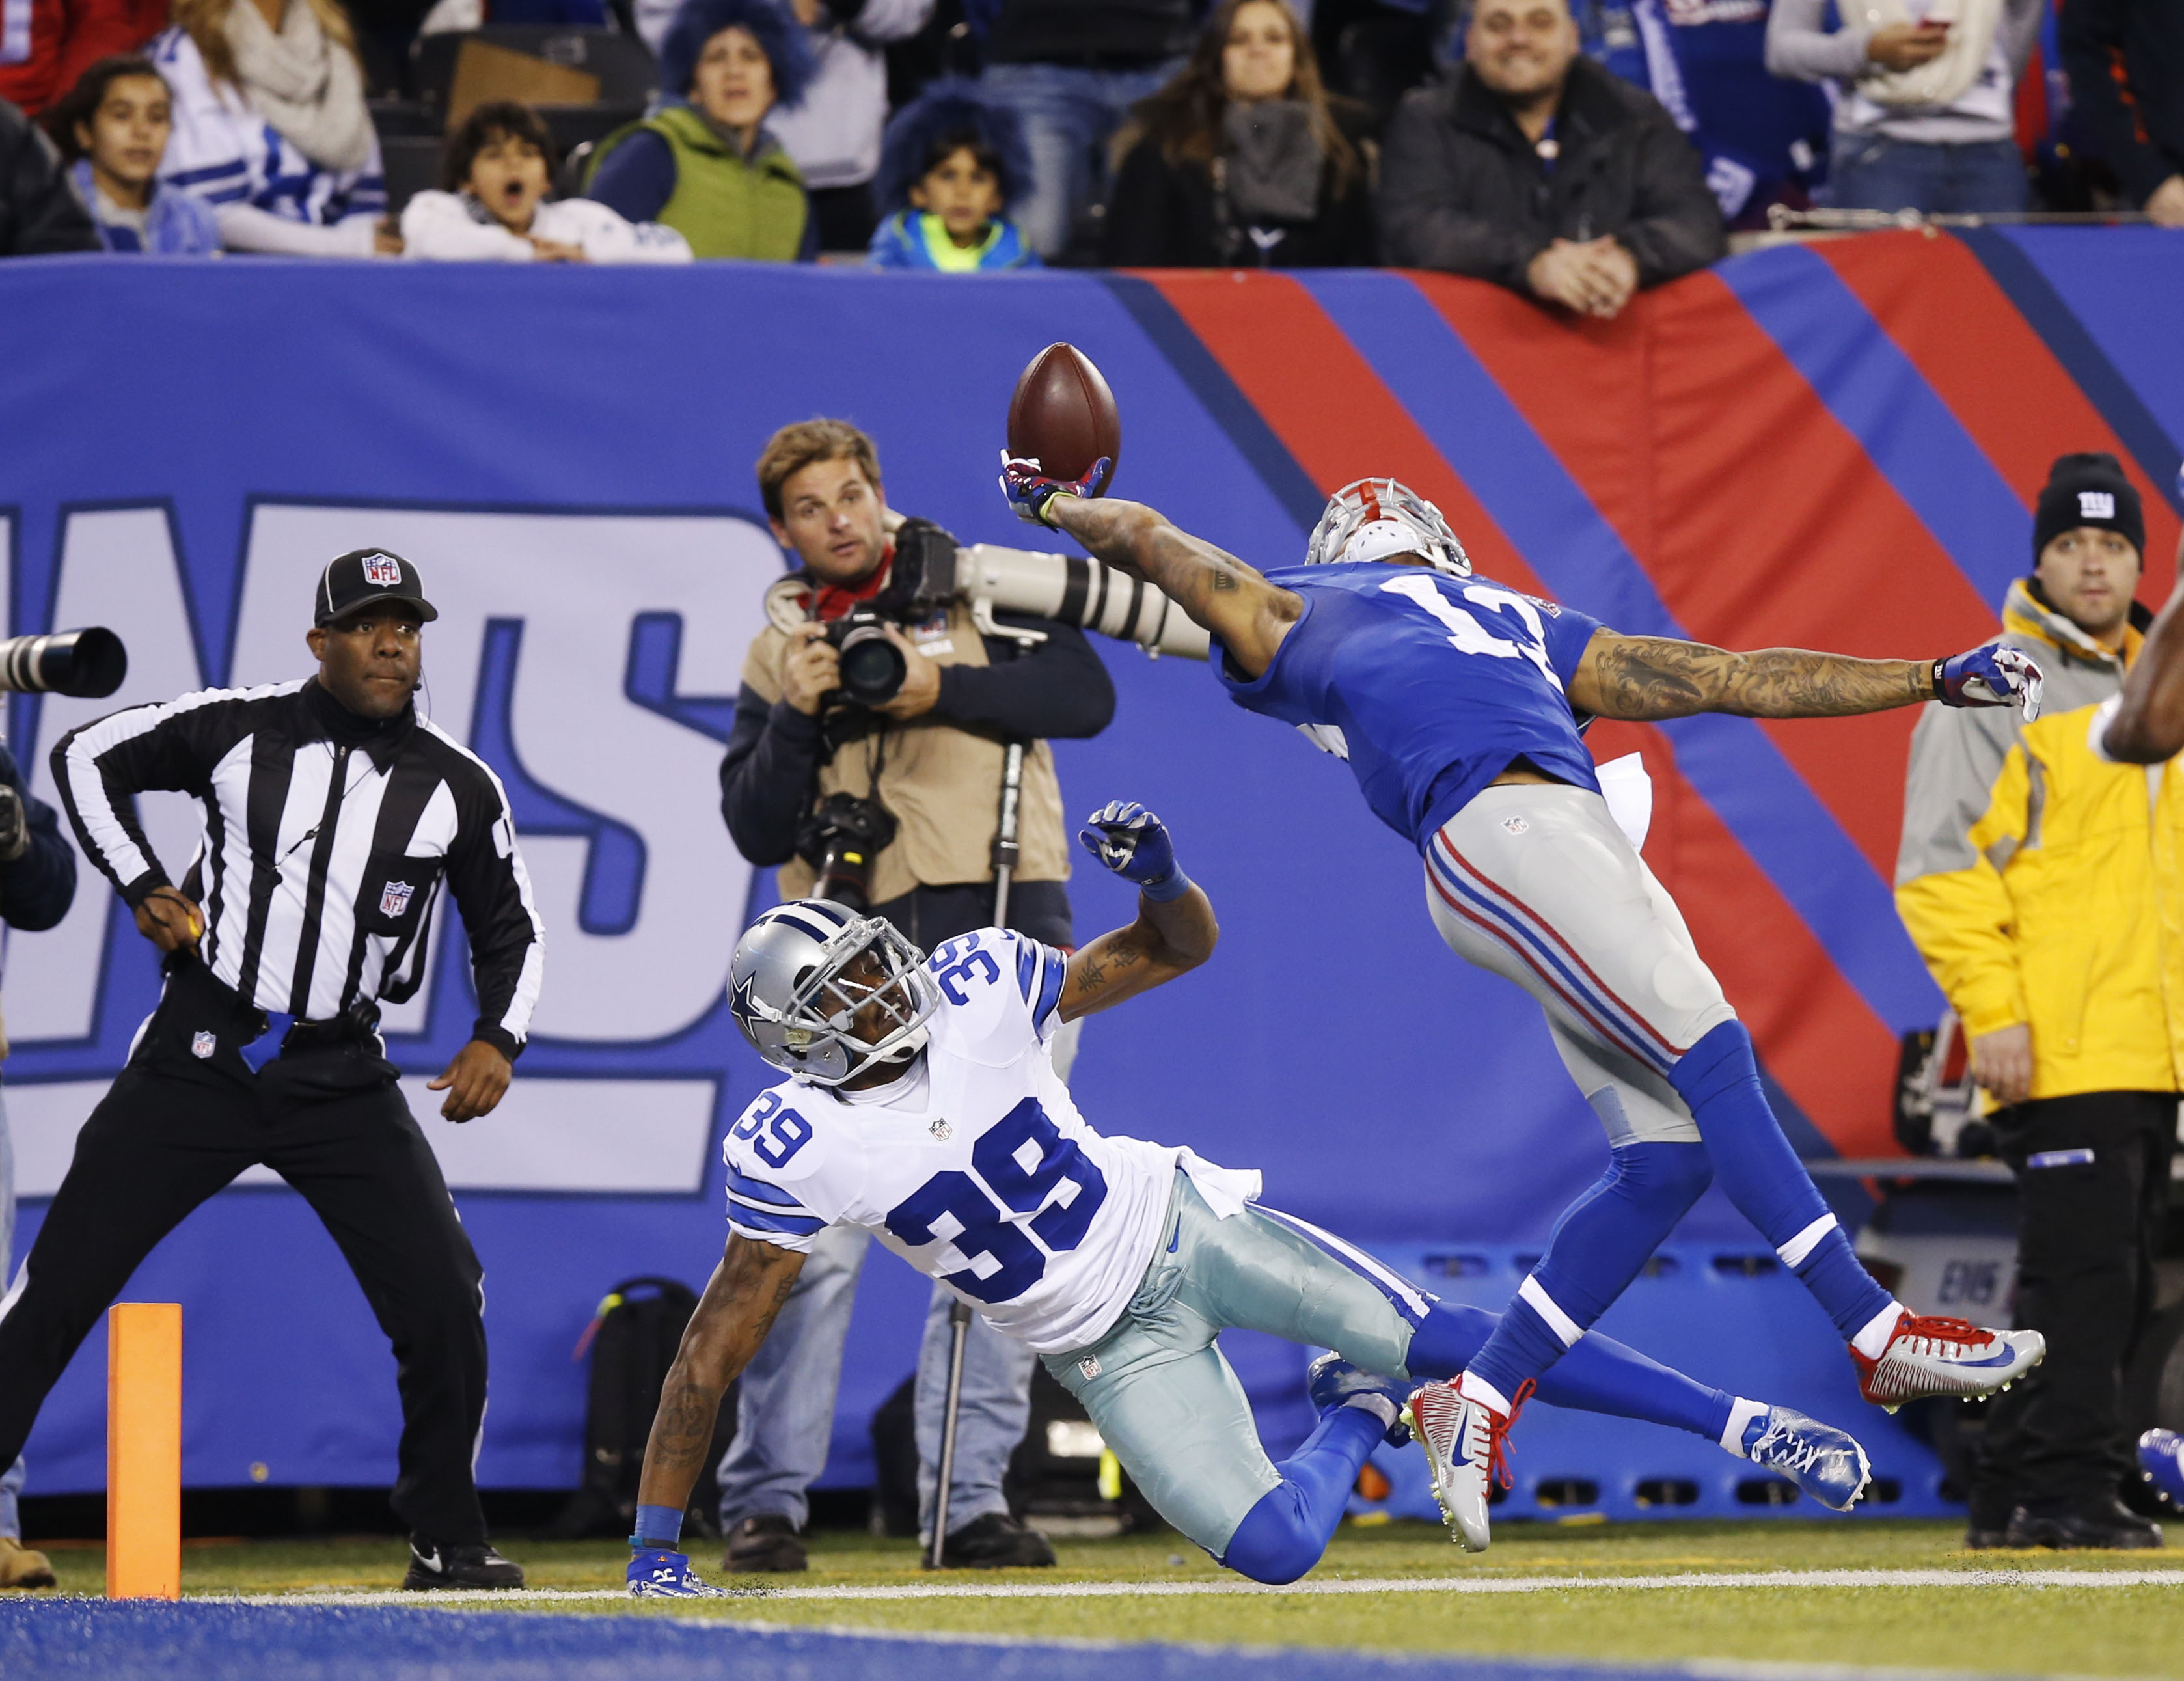 Cowboys Rally To Top Giants The Japan Times